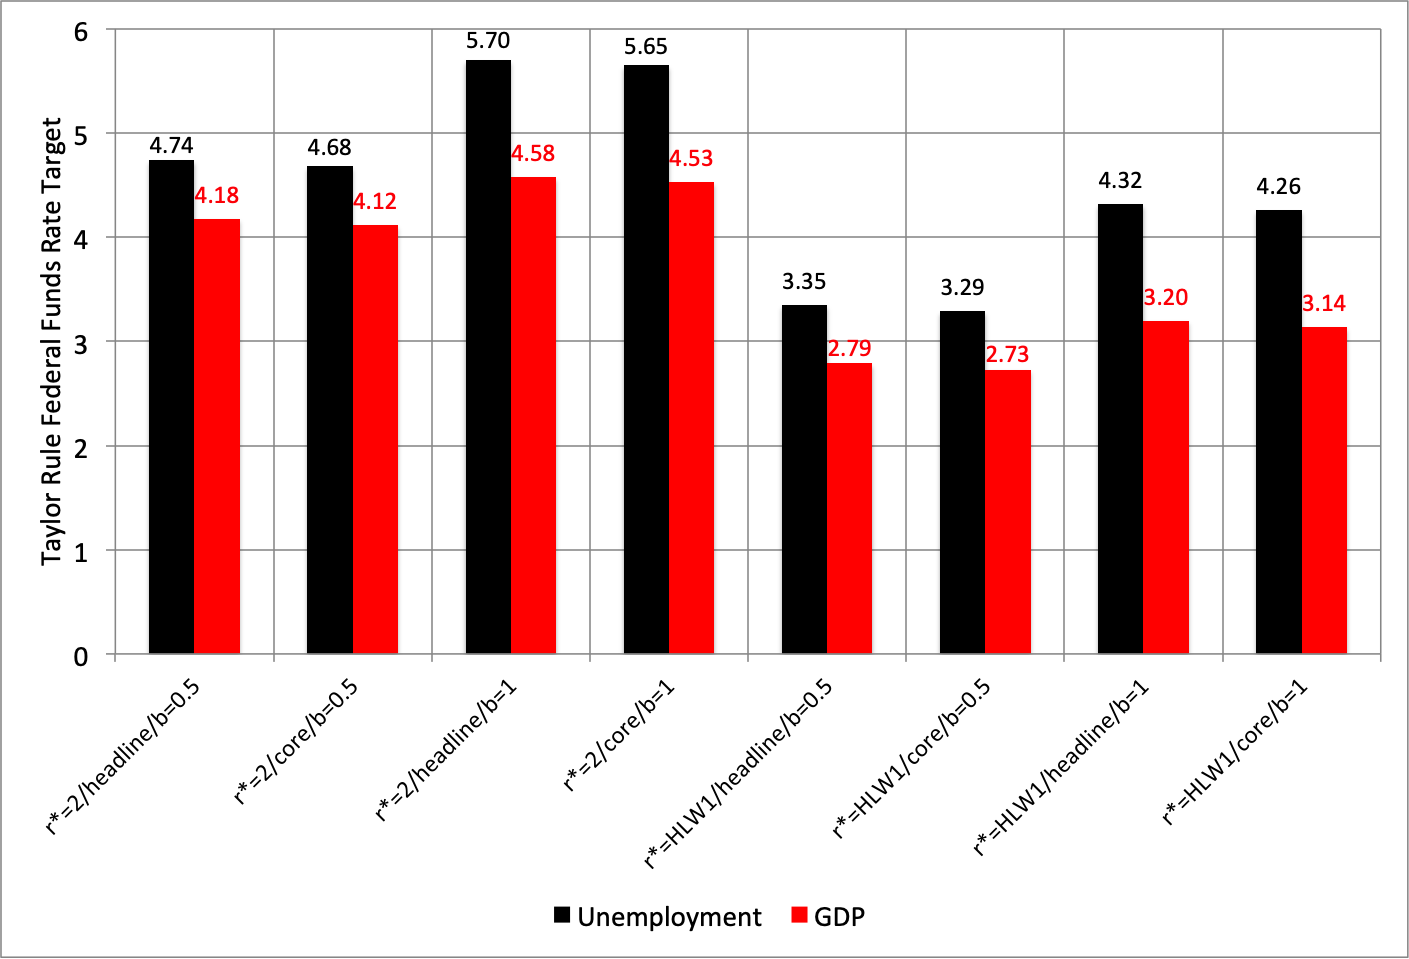 """Notes: HLW is the latest  Holston Laubach Williams one-sided estimate of    r*  . The black bars represent a modified Taylor rule based on the unemployment gap (using the CBO's latest estimate of  u* ), while the red bars are based on the output gap between current real GDP and the CBO estimate of potential GDP. Headline and core are measures of inflation based on the price index of personal consumption expenditures. A value of b=0.5 corresponds to the original Taylor rule, while b=1 reflects the """"balanced approach"""" that doubles the weight on resource utilization. Source: FRB Atlanta, Taylor rule utility."""